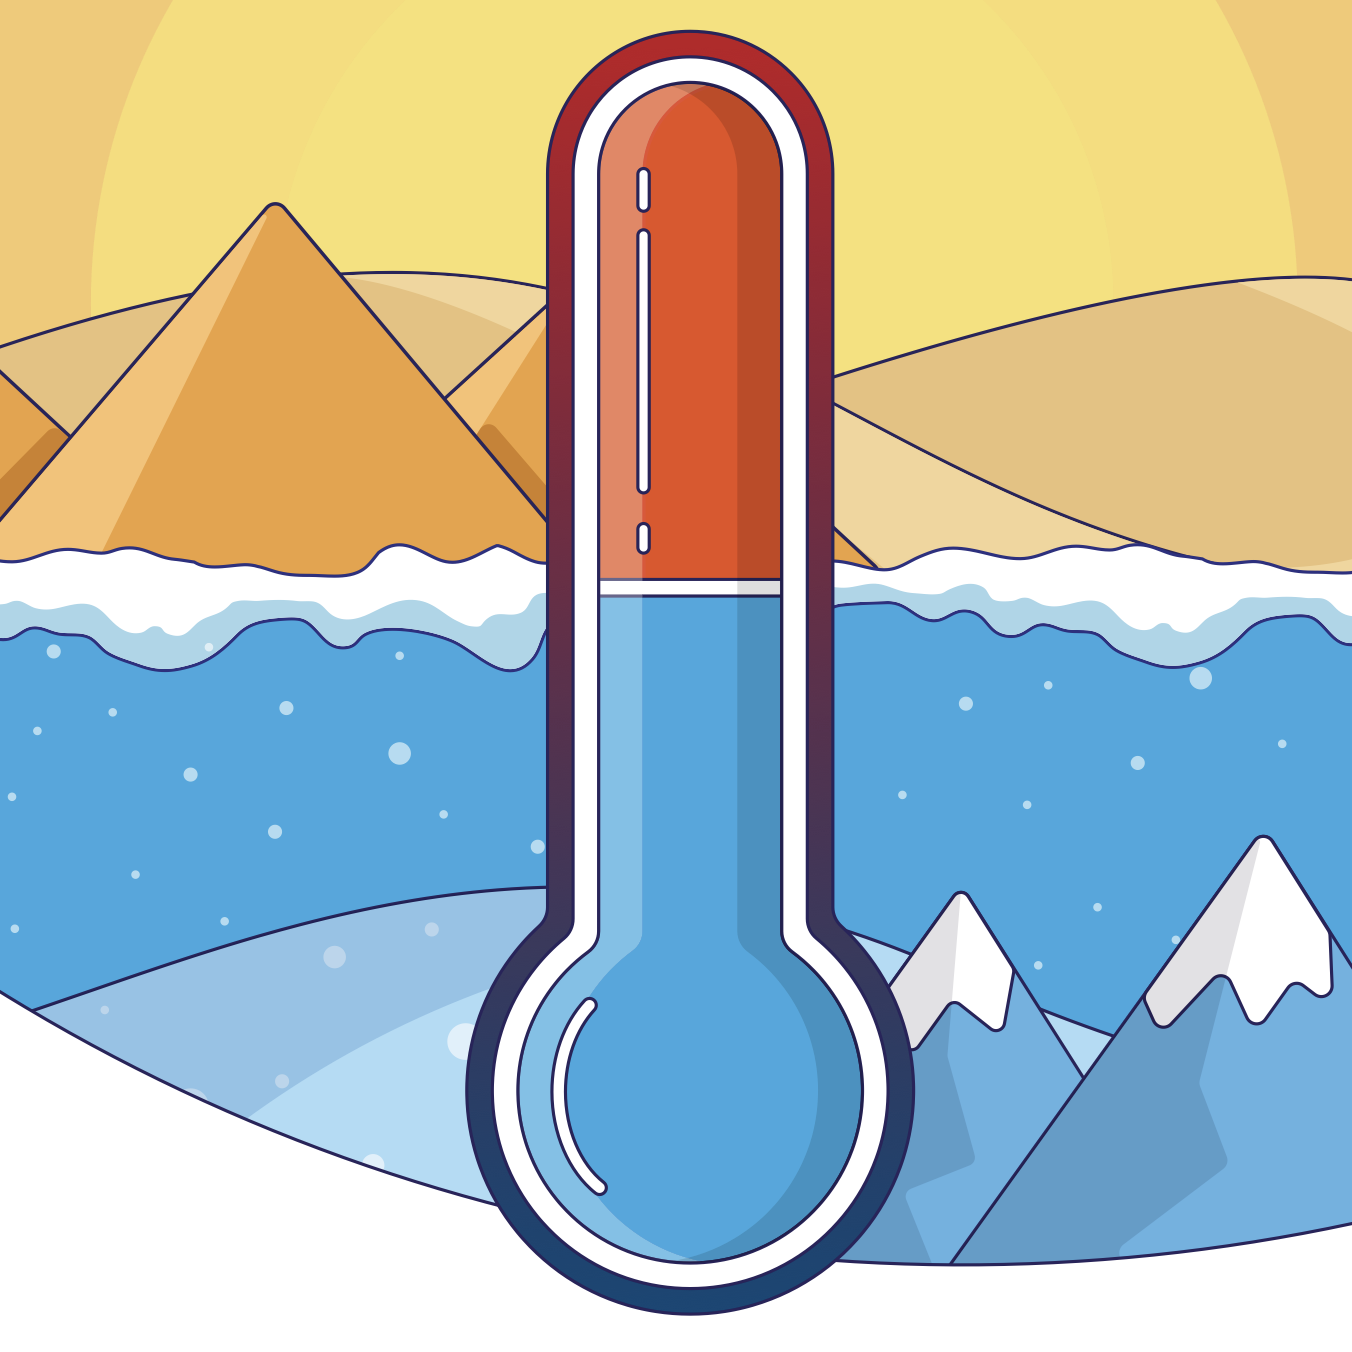 Who is responsible for the temperature of a property?